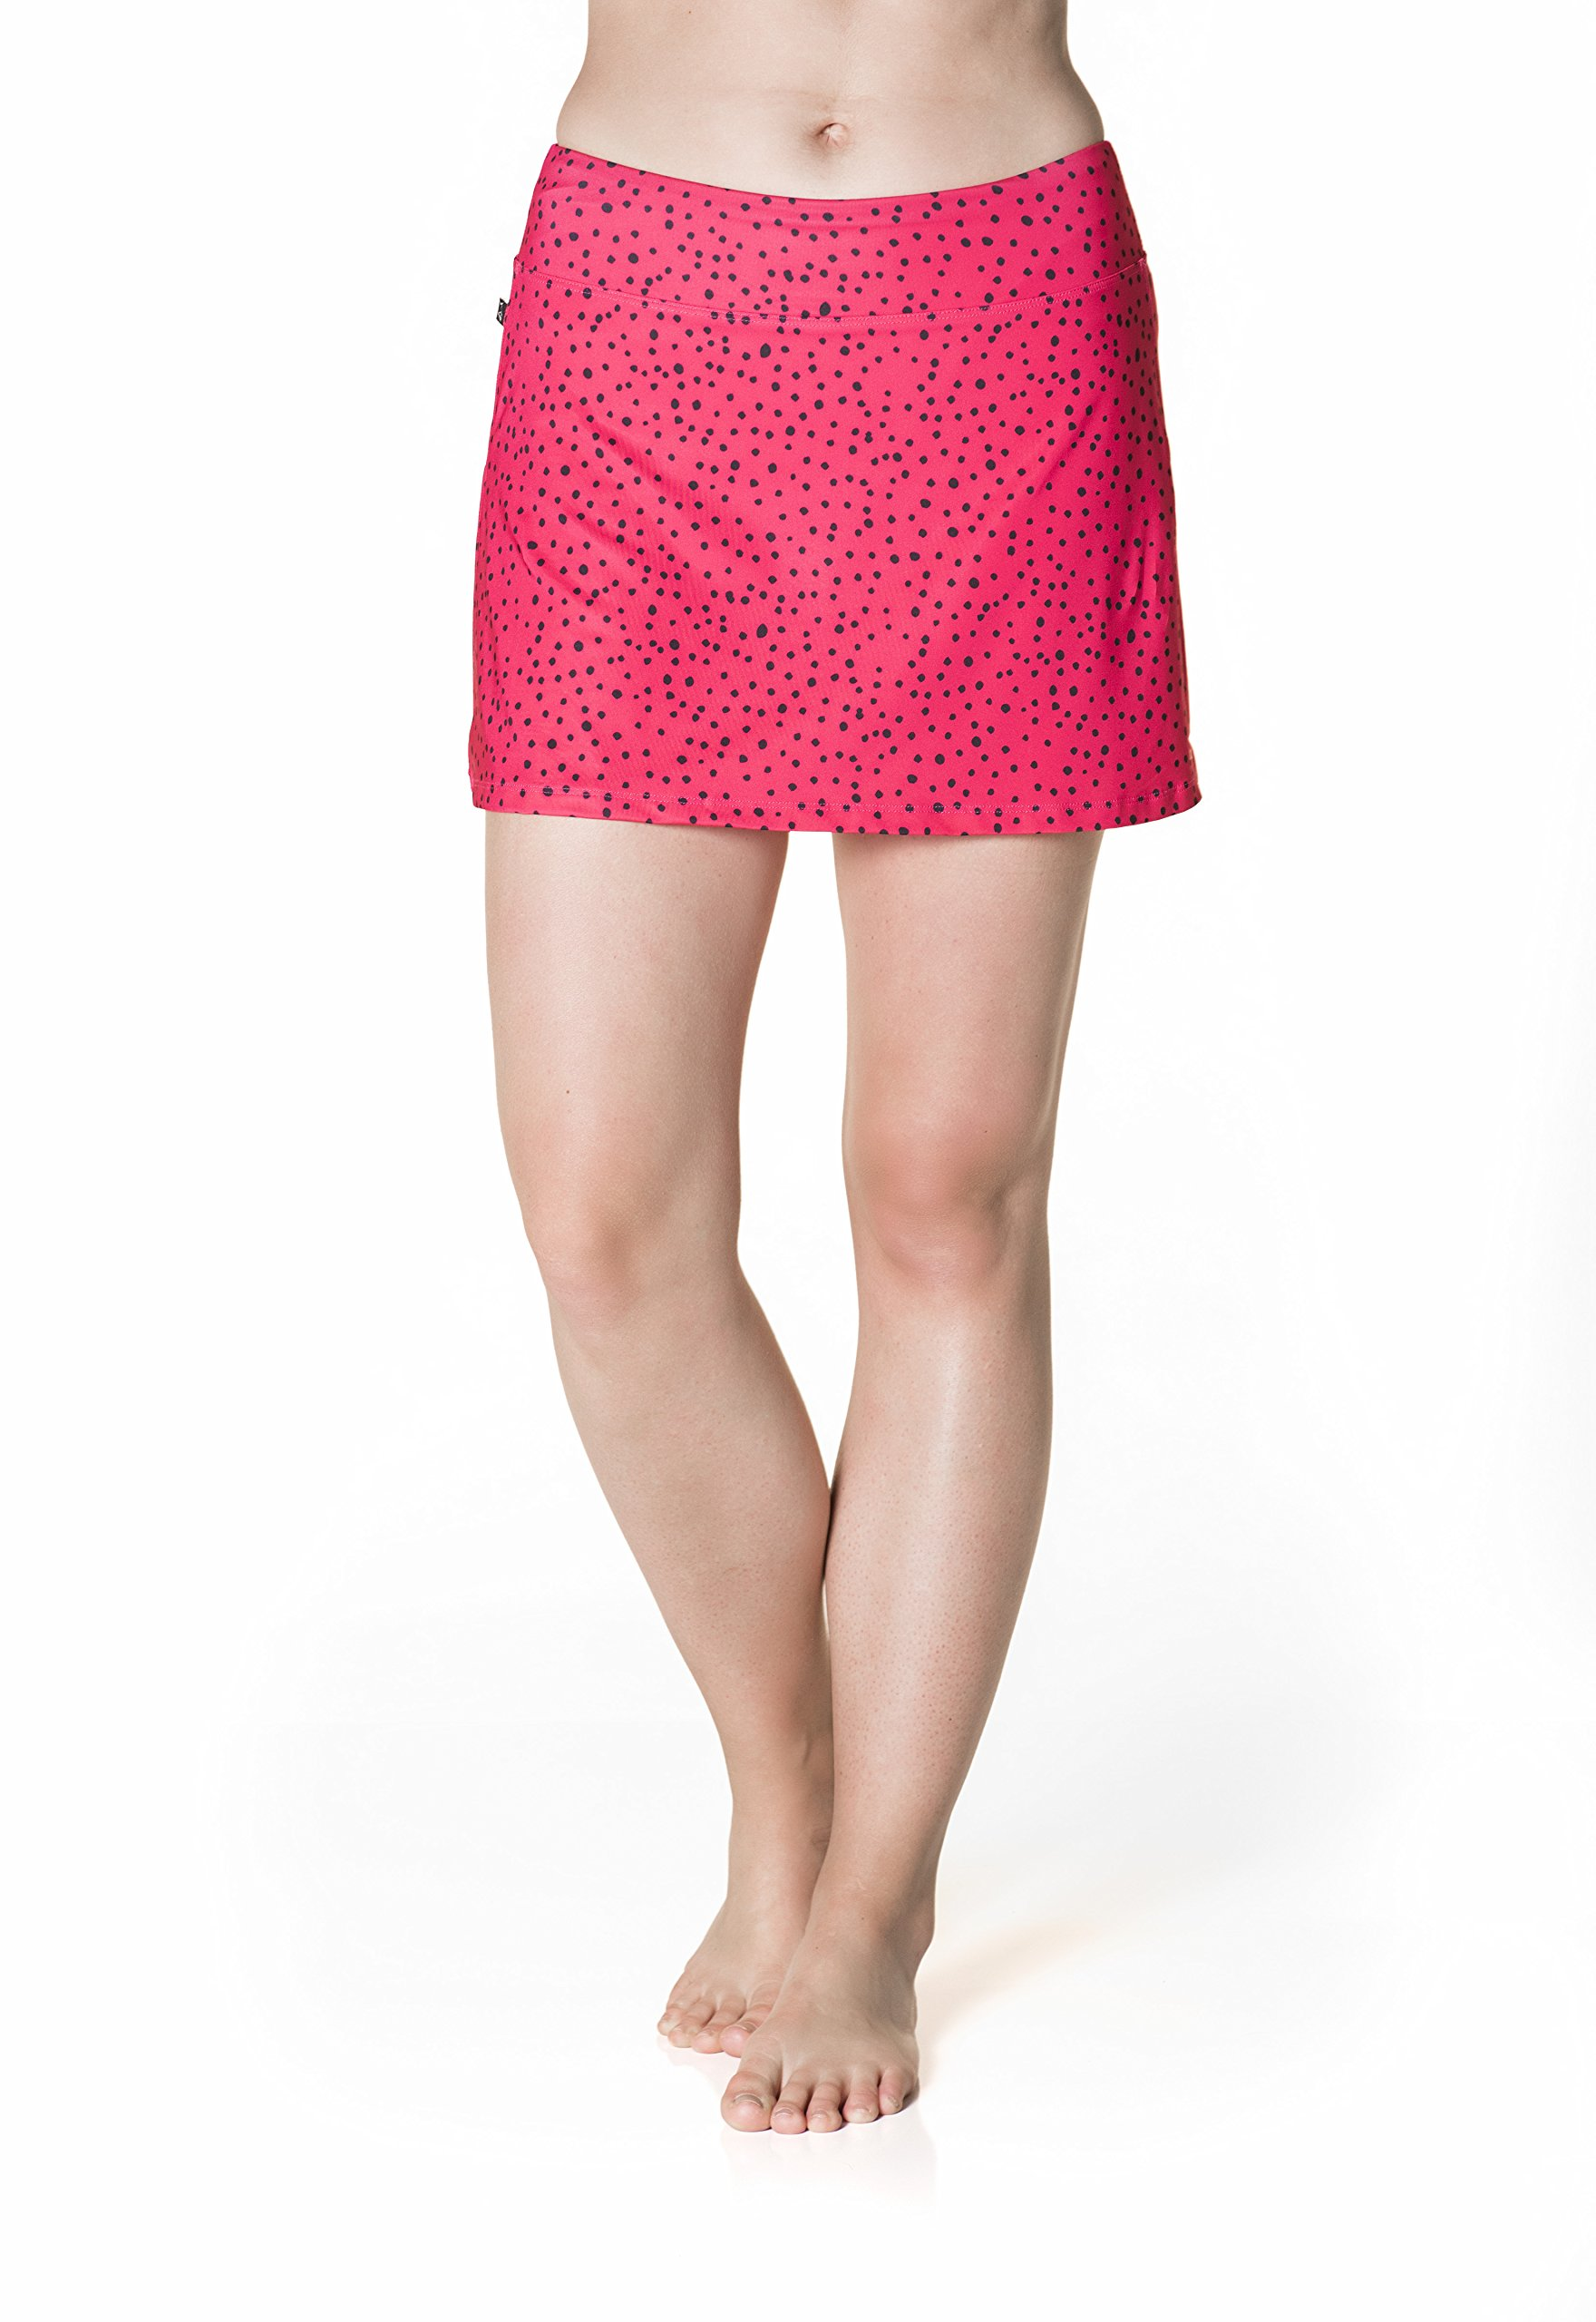 Skirt Sports Women's Happy Girl Skirt, Bubbly Print by Skirt Sports